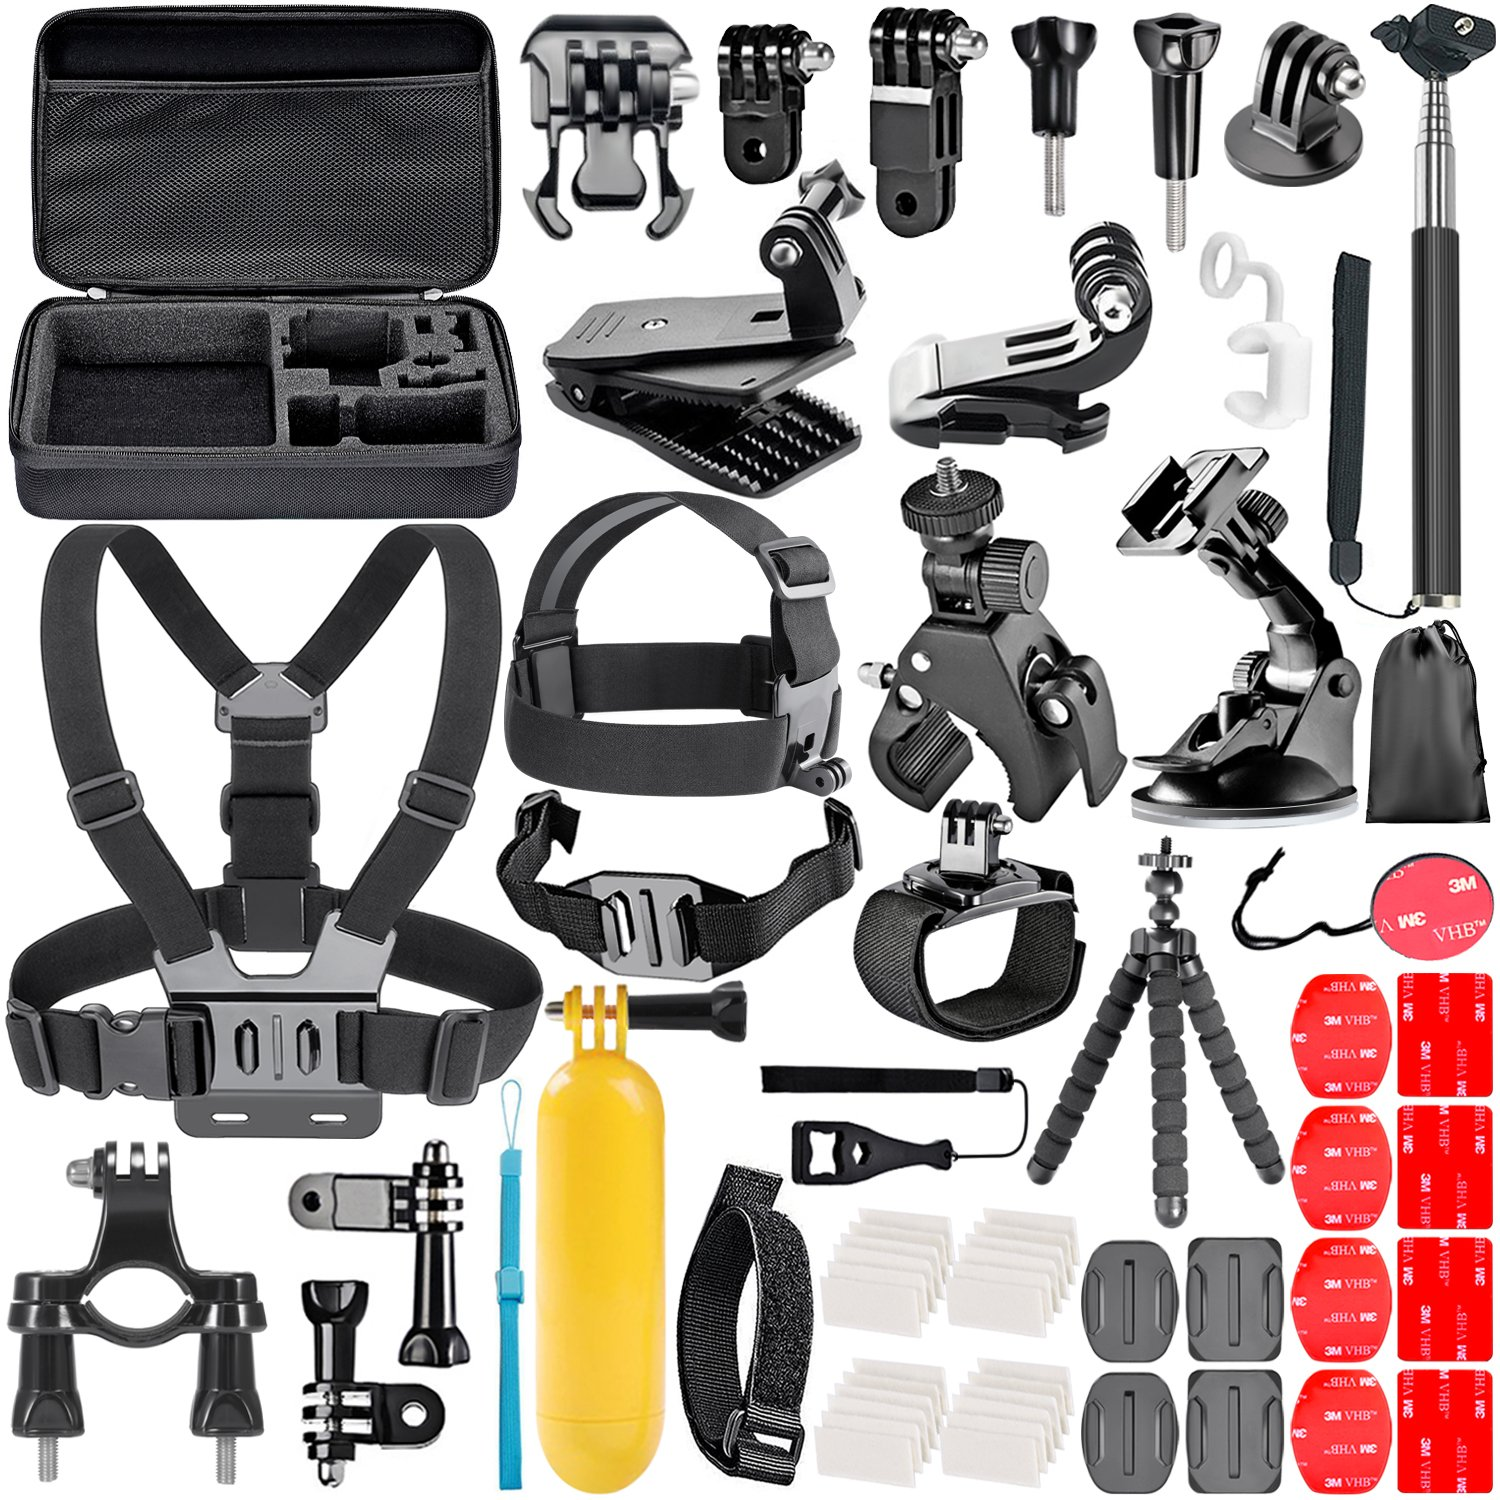 Neewer 58-In-1 Action Camera Accessory Kit for GoPro Hero Session 5 Hero 1  2 3 3 94392ee8283